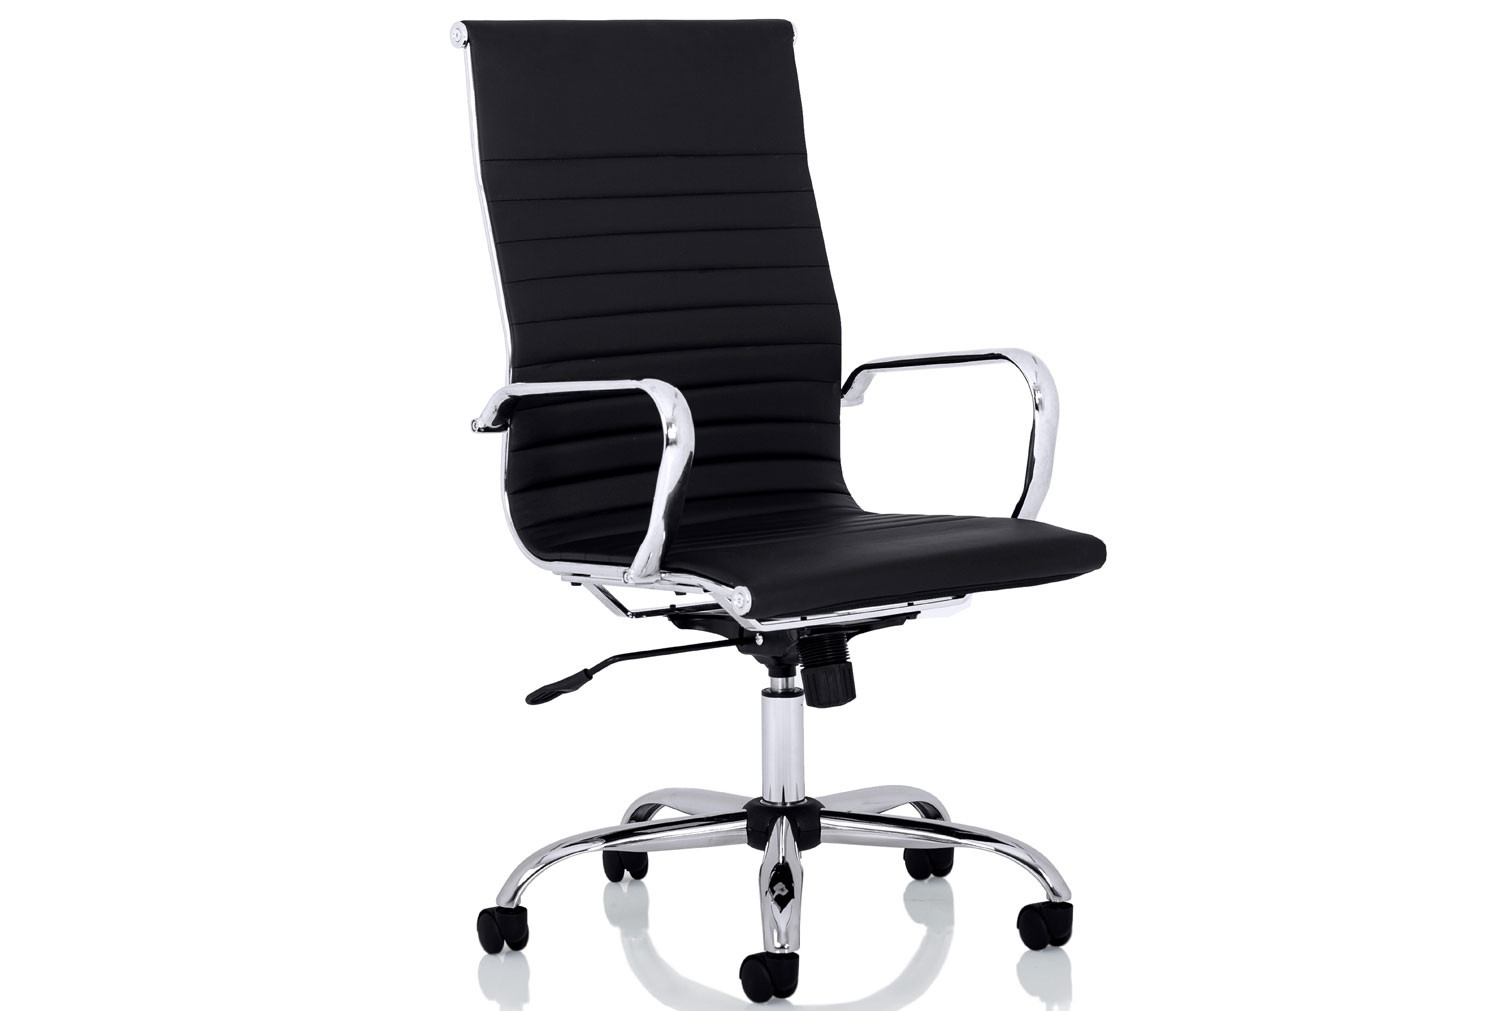 Besos High Back Bonded Leather Executive Chair (Black)